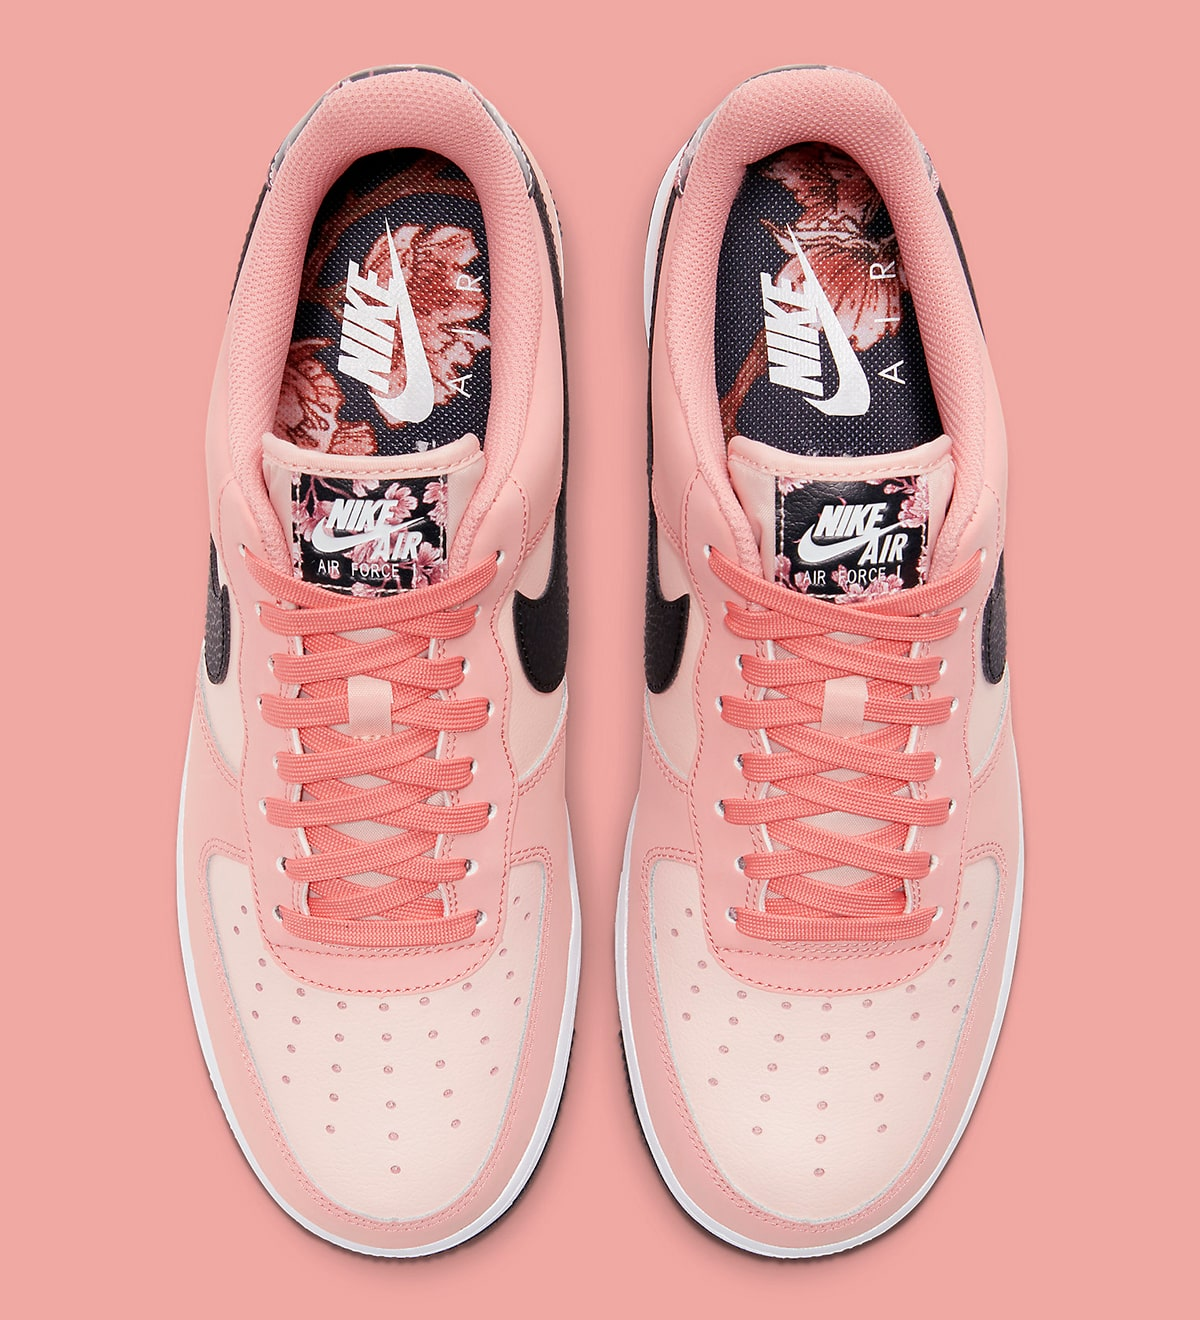 Gets Popped With Cherry Blossom Prints